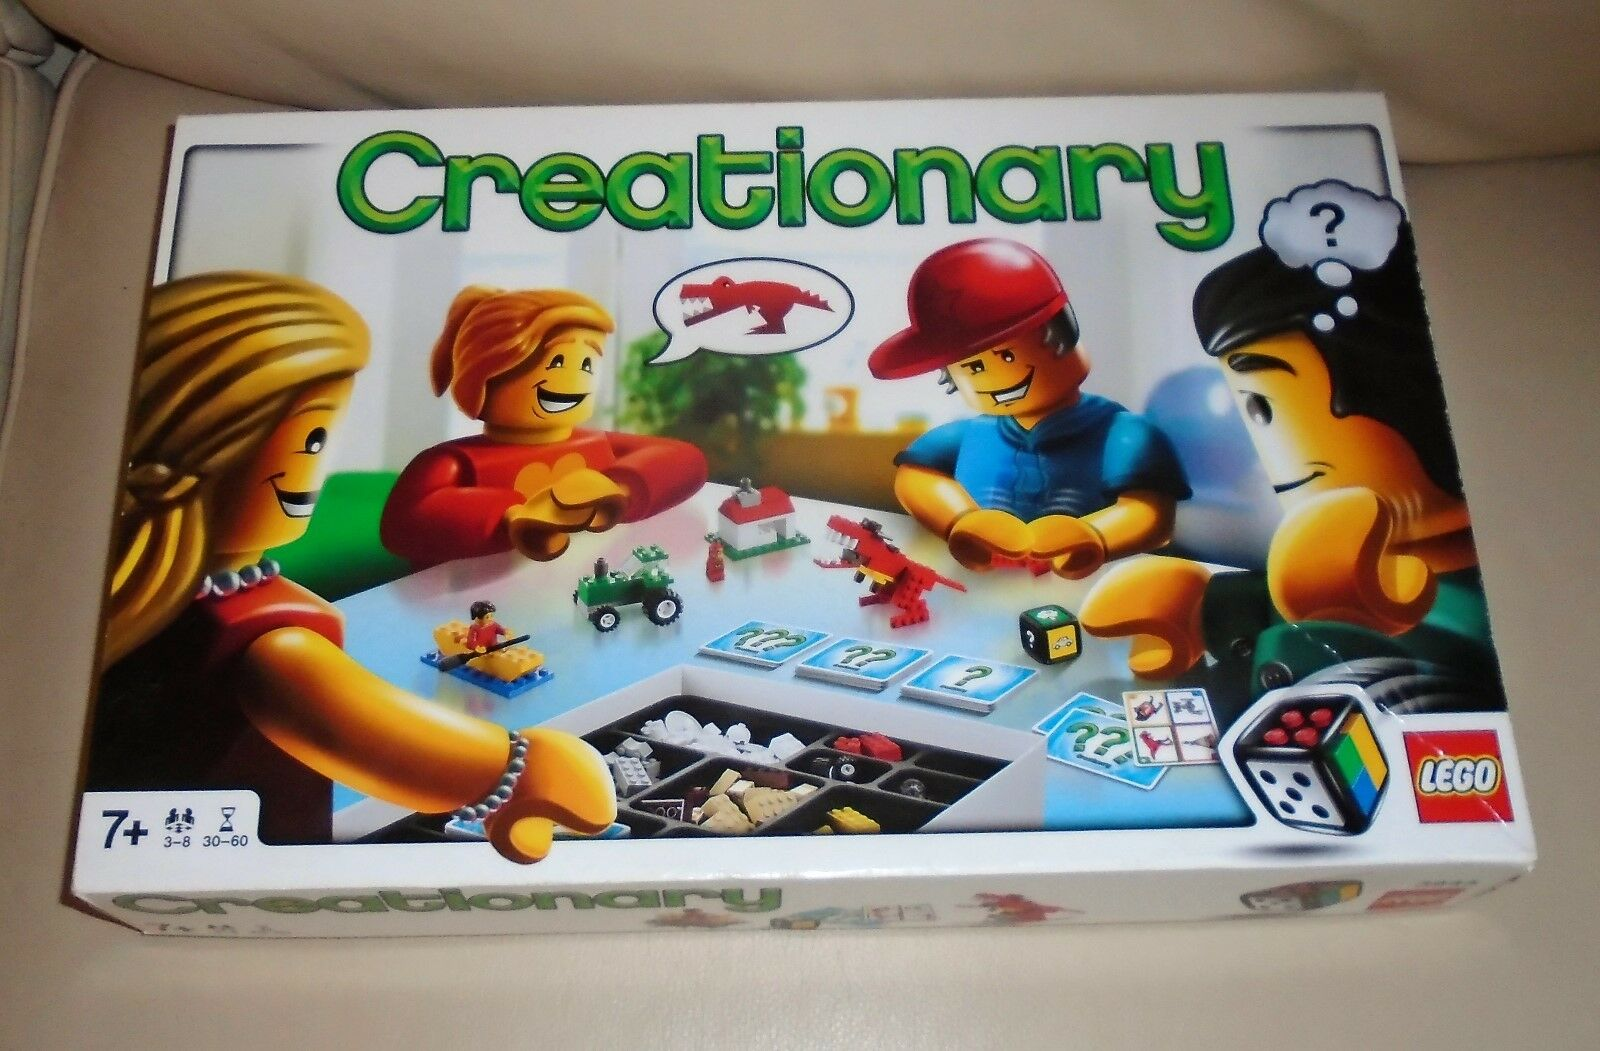 LEGO Games Creationary Board Game 3844 with Instructions. Boxed. Complete. b